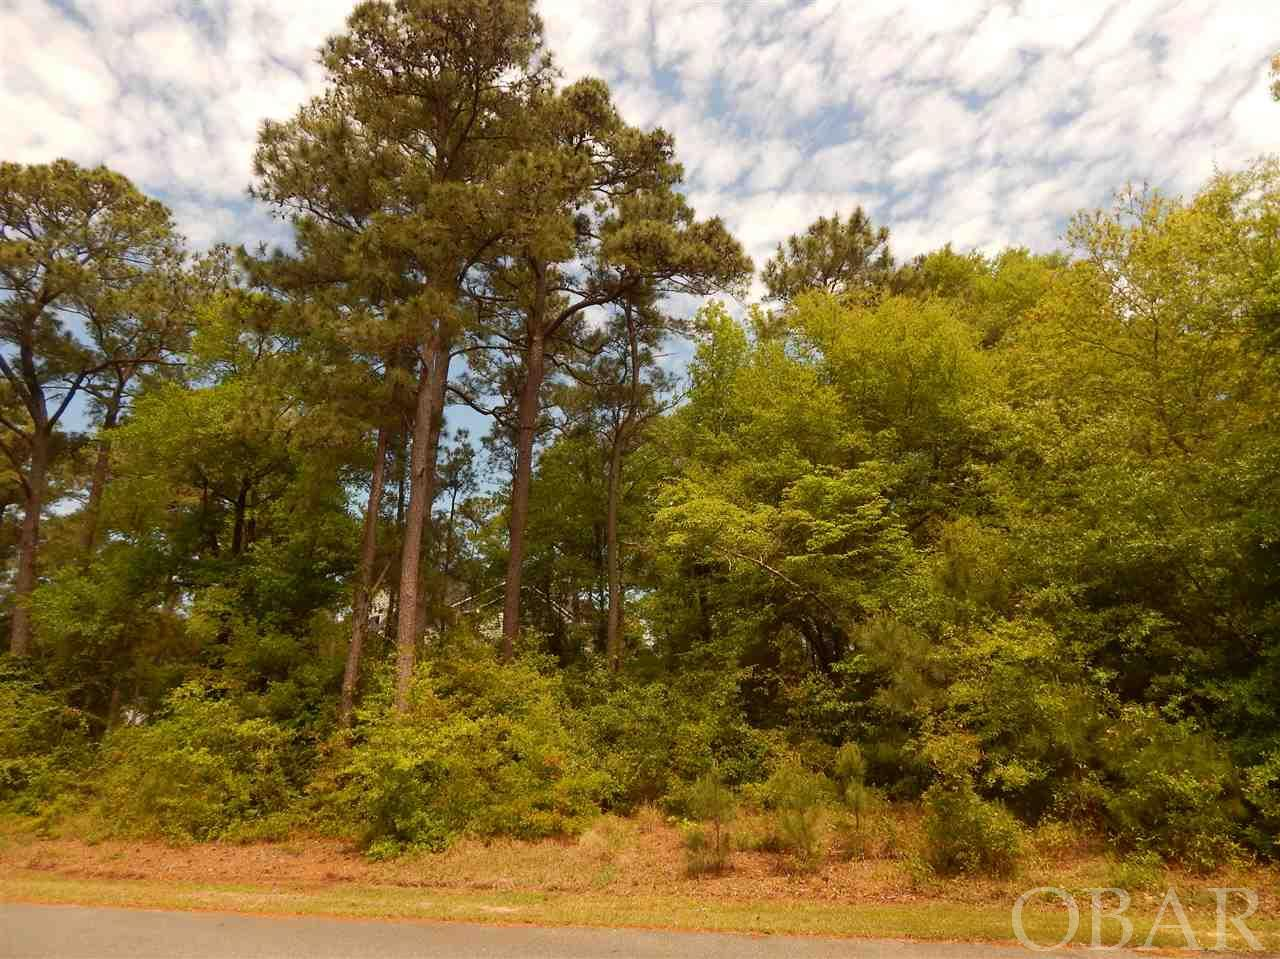 177 Sunrise Crossing Dr, Kill Devil Hills, NC 27948, ,Lots/land,For sale,Sunrise Crossing Dr,104922